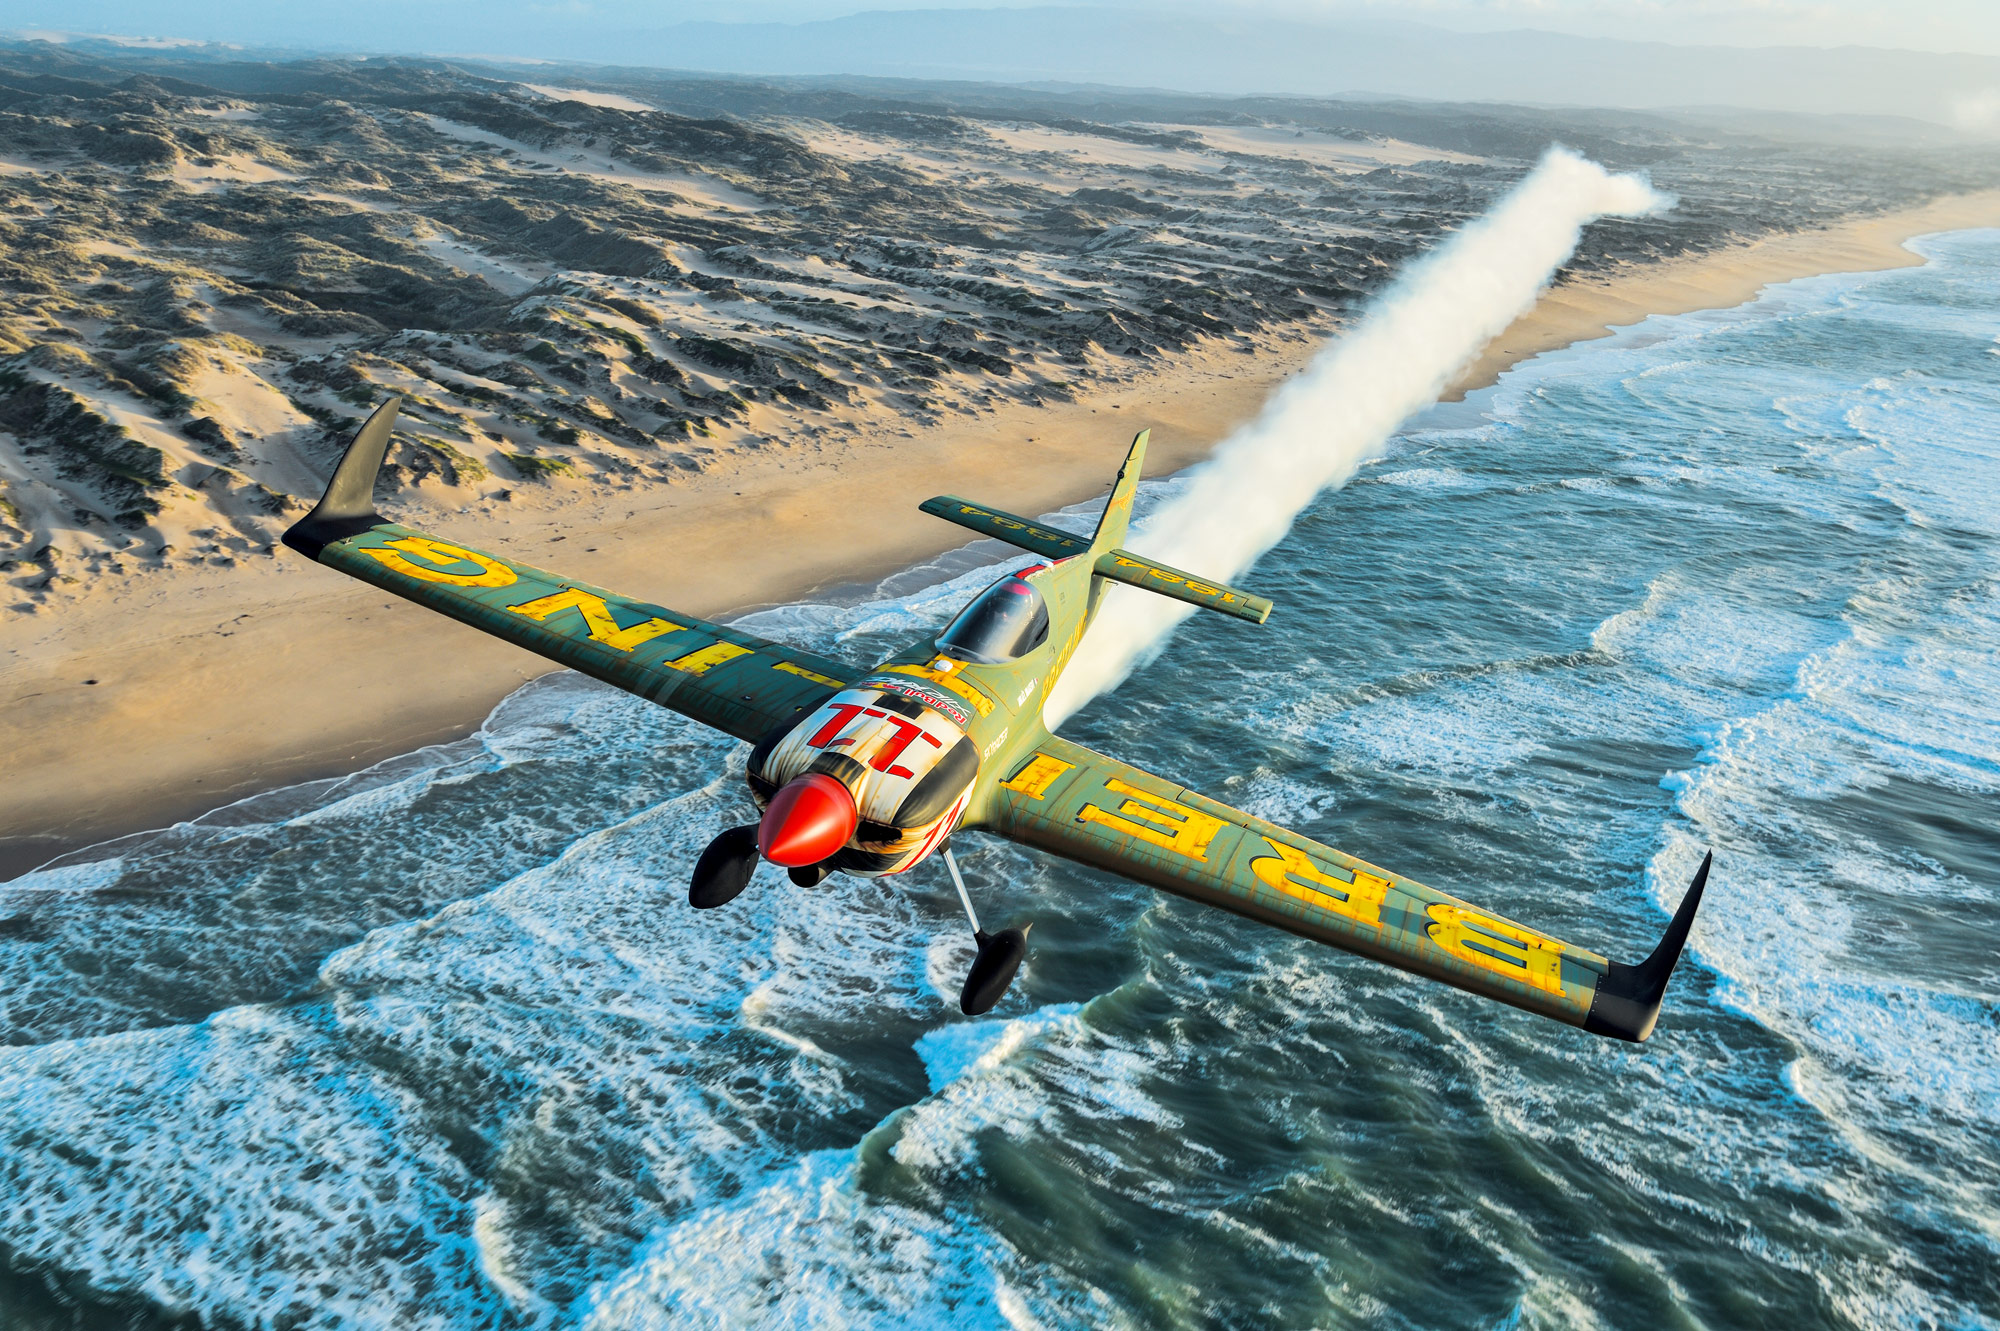 Mika Brageot And His 'Skyracer' Flying Under The Breitling Colours